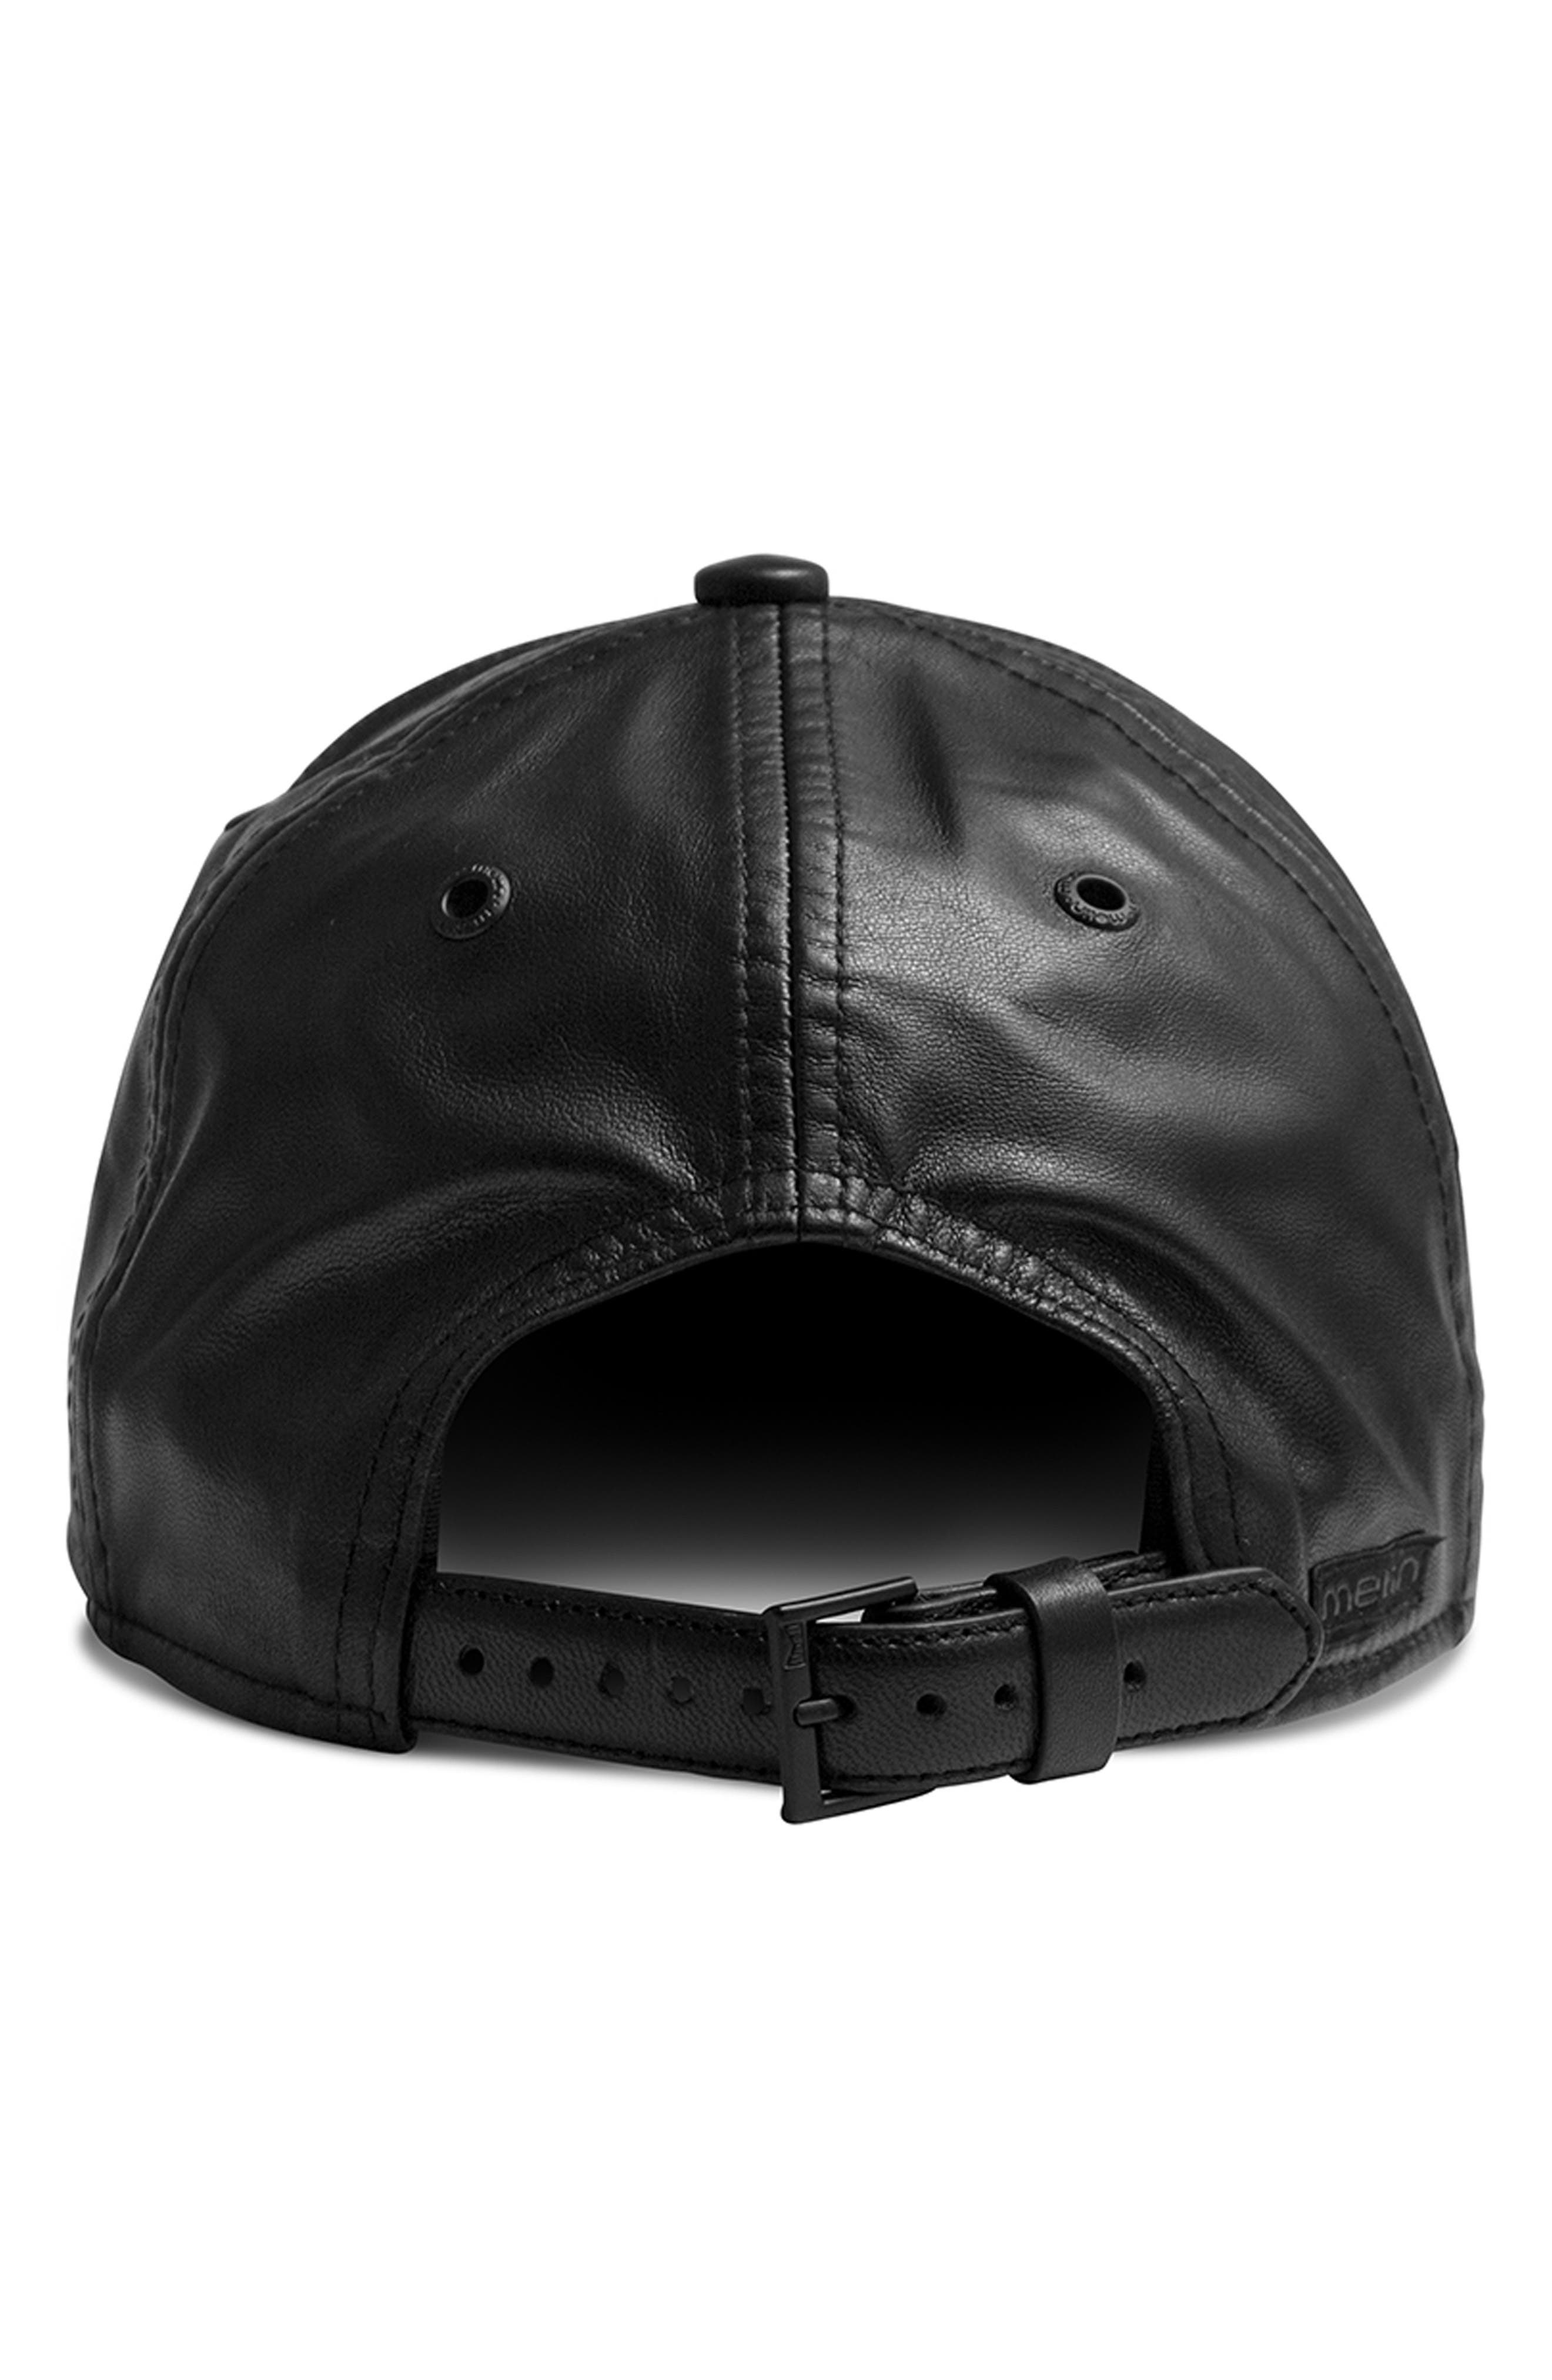 Voyage Elite Leather Ball Cap,                             Alternate thumbnail 3, color,                             BLACK